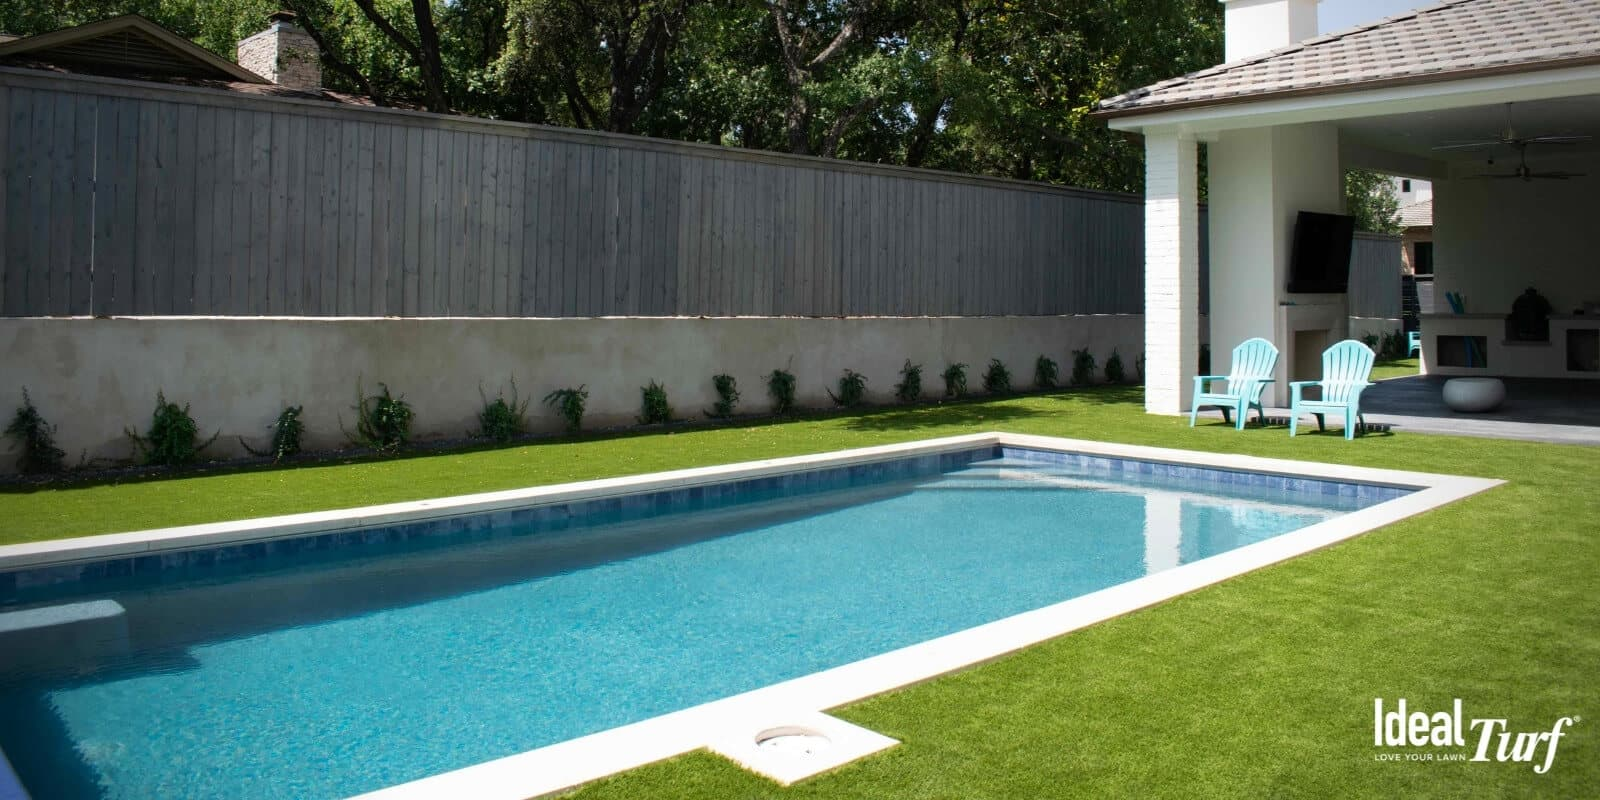 3. Can I Use Artificial Grass Around Swimming Pools